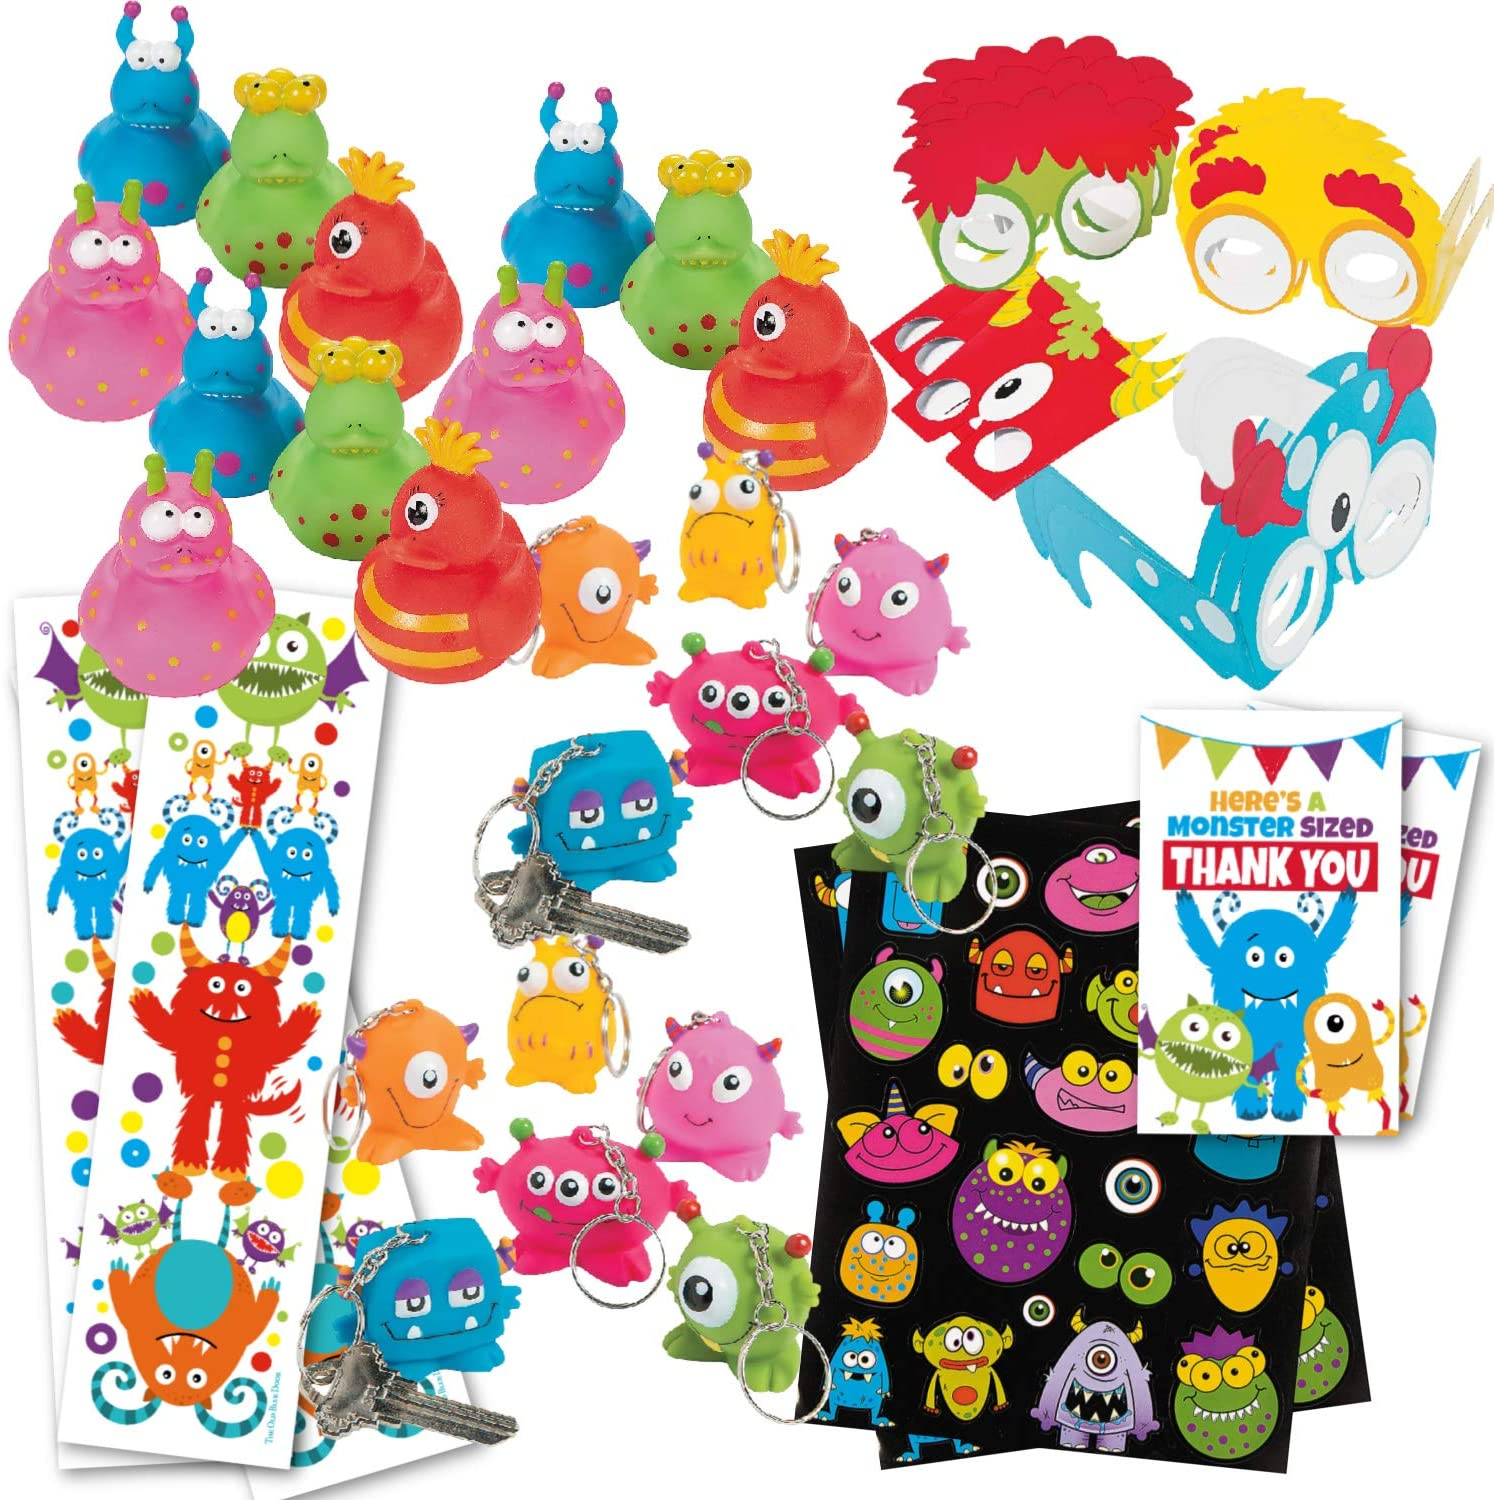 Monster Birthday Party Favors (80 Count Bulk Pack) - (12) Monster Rubbers Ducks, (12) Keychains, (12) Party Glasses, (12) Sticker Sheets, (12) Bookmarks, (20) Favor Tags - Kids Monster Party Supplies